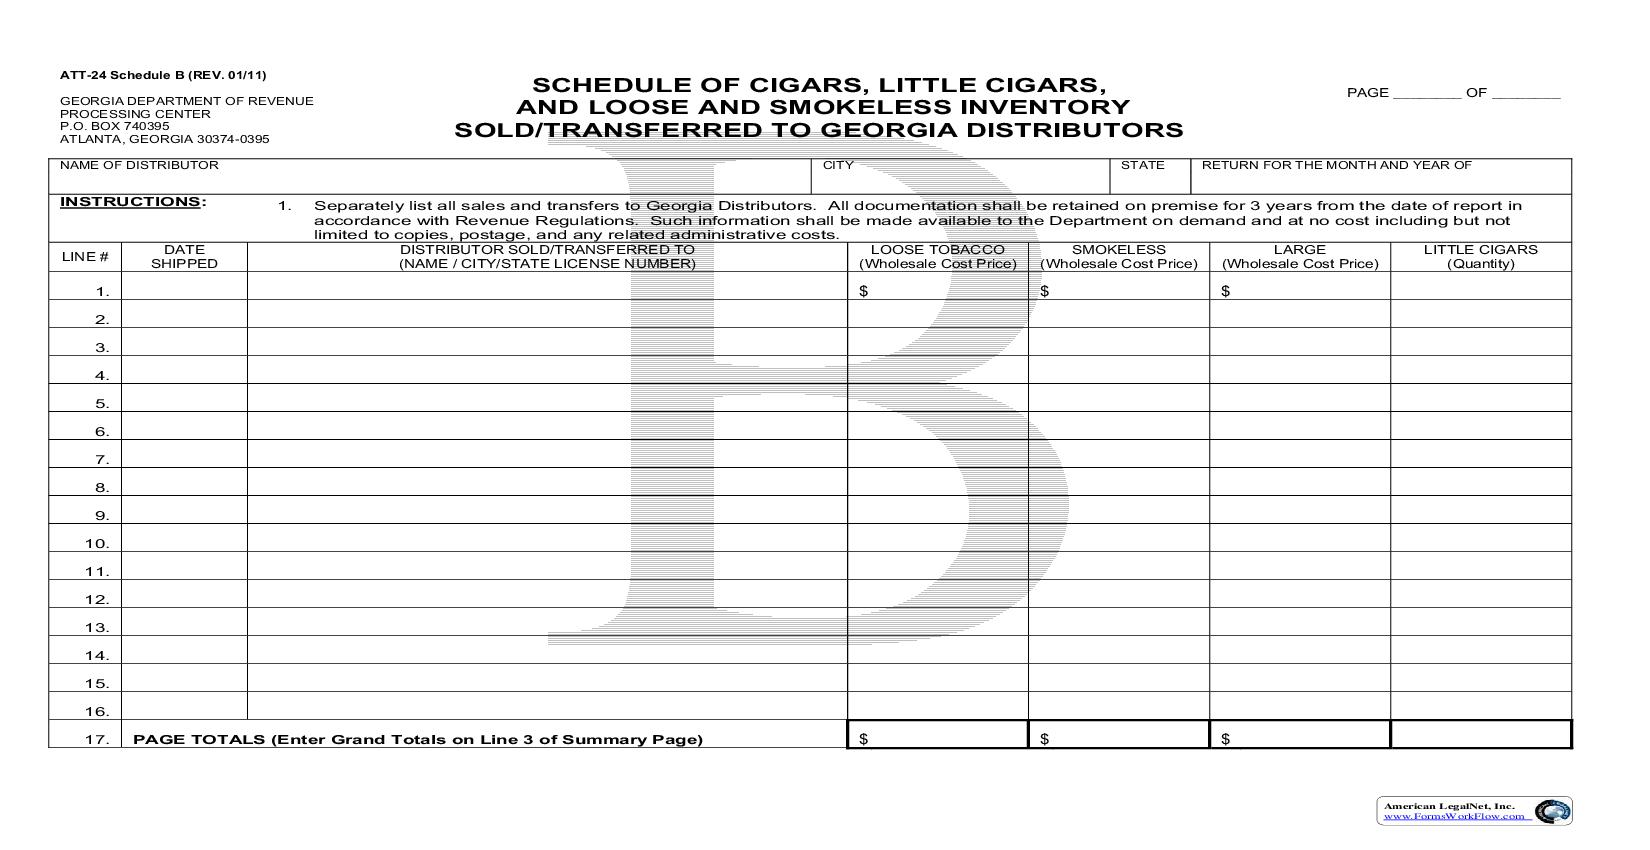 Schedule Of Loose And Smokeless Inventory Sold To GA Distributors {ATT-24-SCHEDULE B} | Pdf Fpdf Doc Docx | Georgia